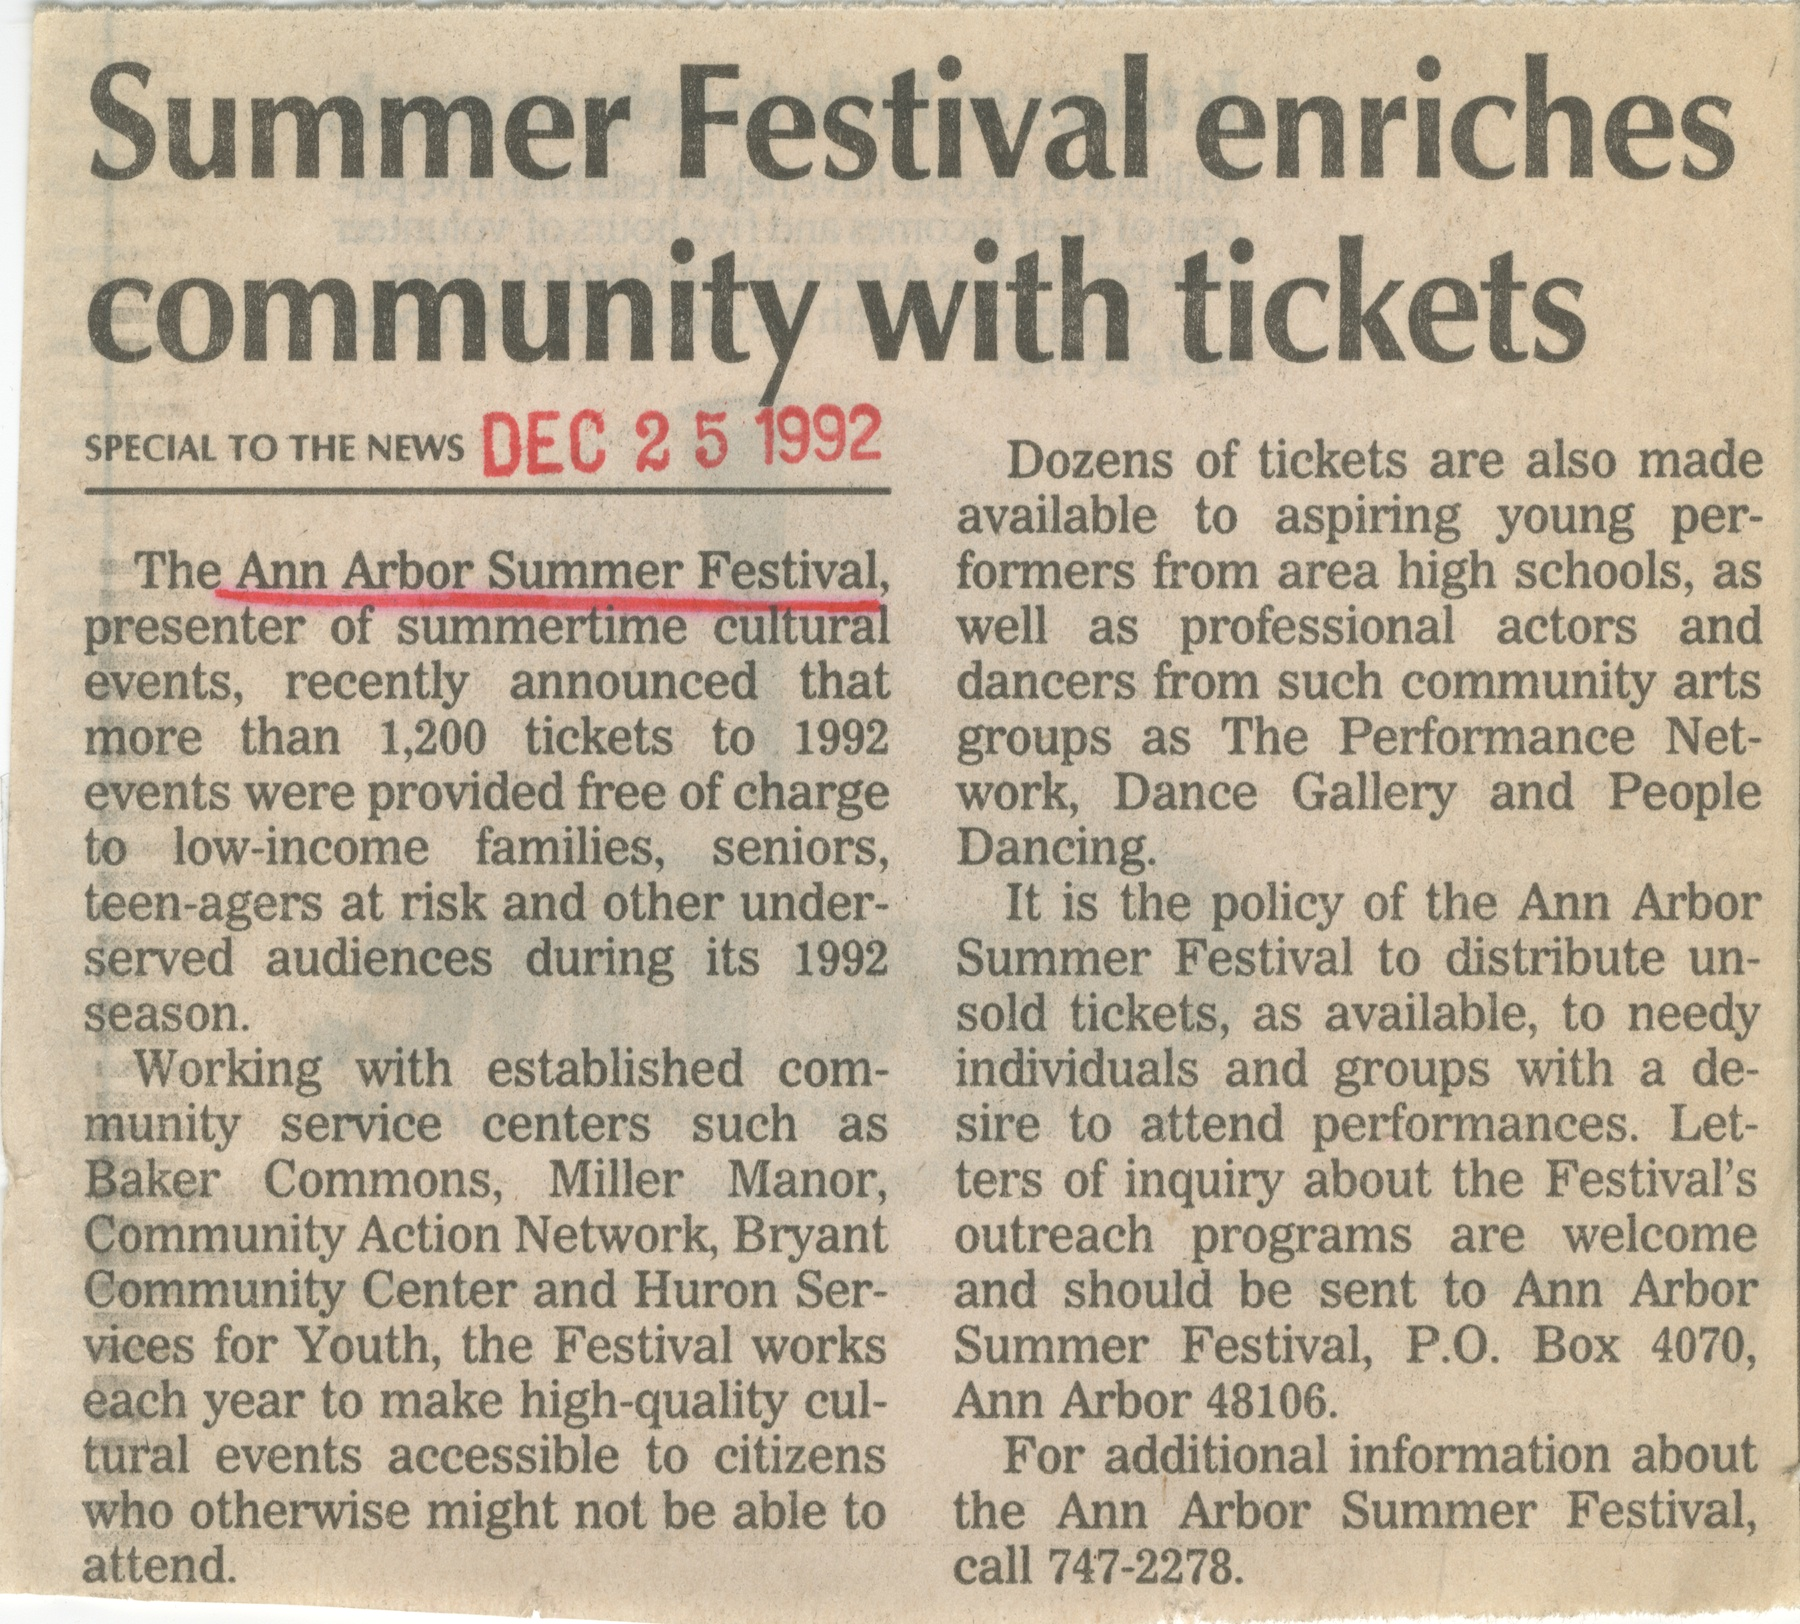 Summer Festival enriches community with tickets image